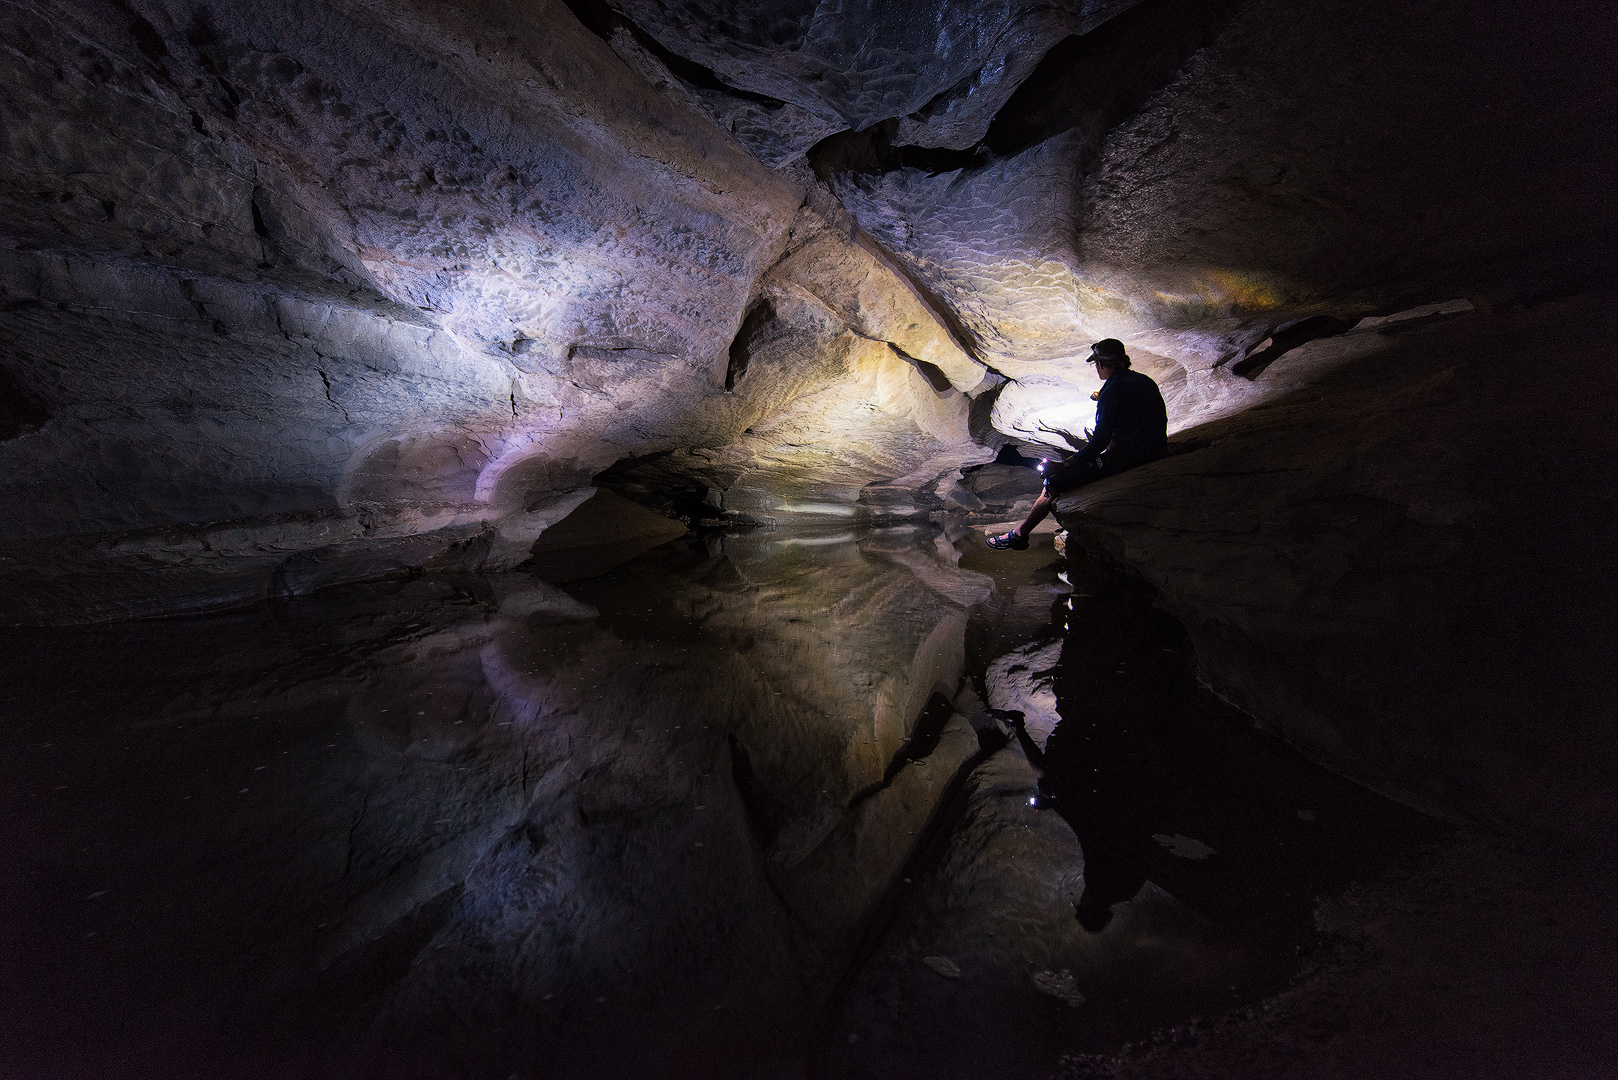 Sinks of Gandy, Underground Stream, West Virginia, Randolph County, Cave, Monongahela National Forest, Person, Reflection, Water, photo